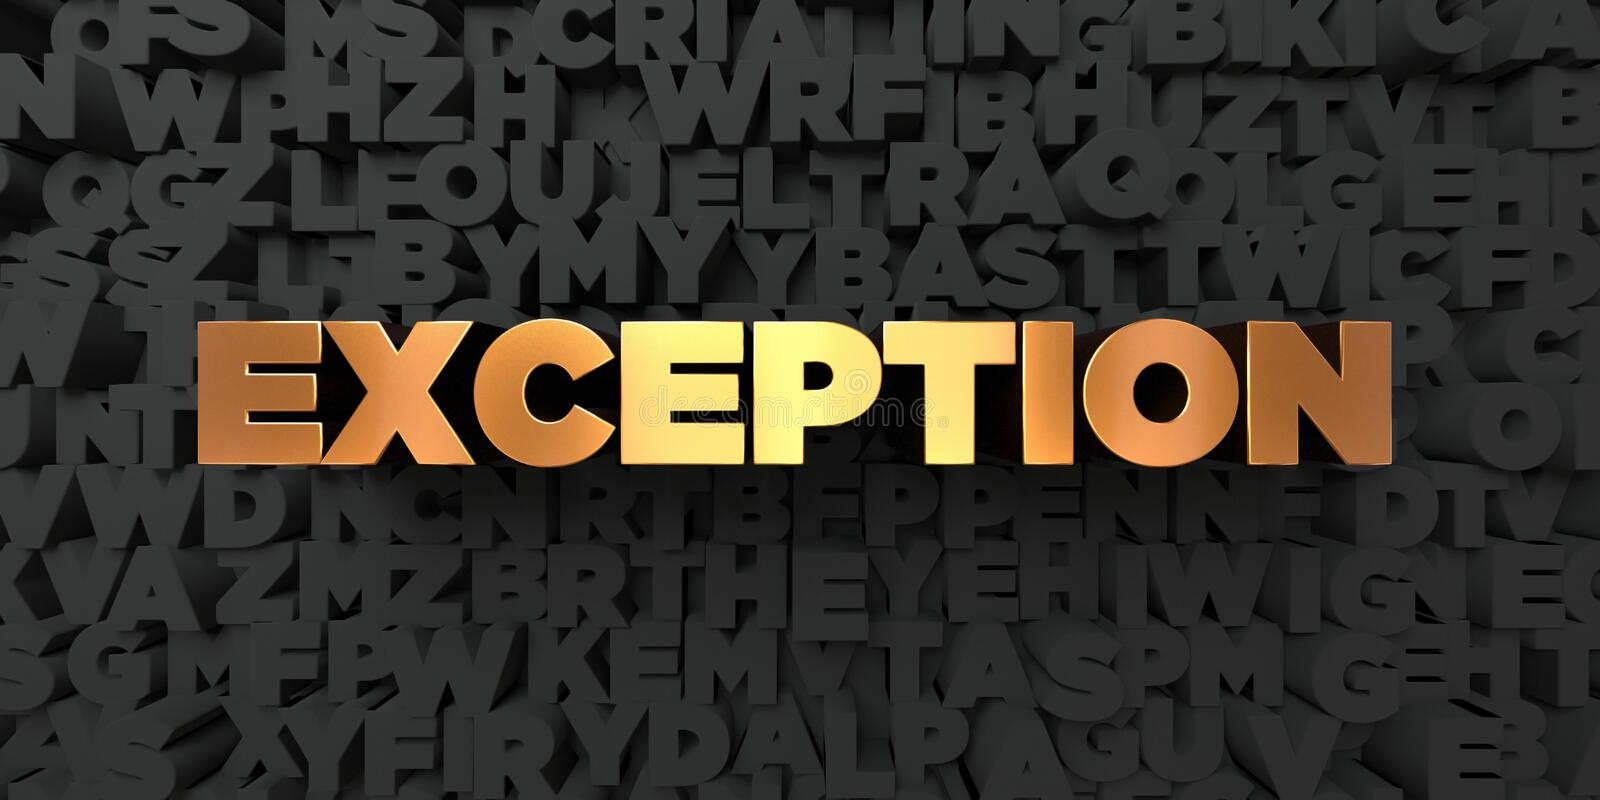 Exception - texte d'or sur le fond noir - photo courante gratuite de redevance rendue par 3D illustration de vecteur